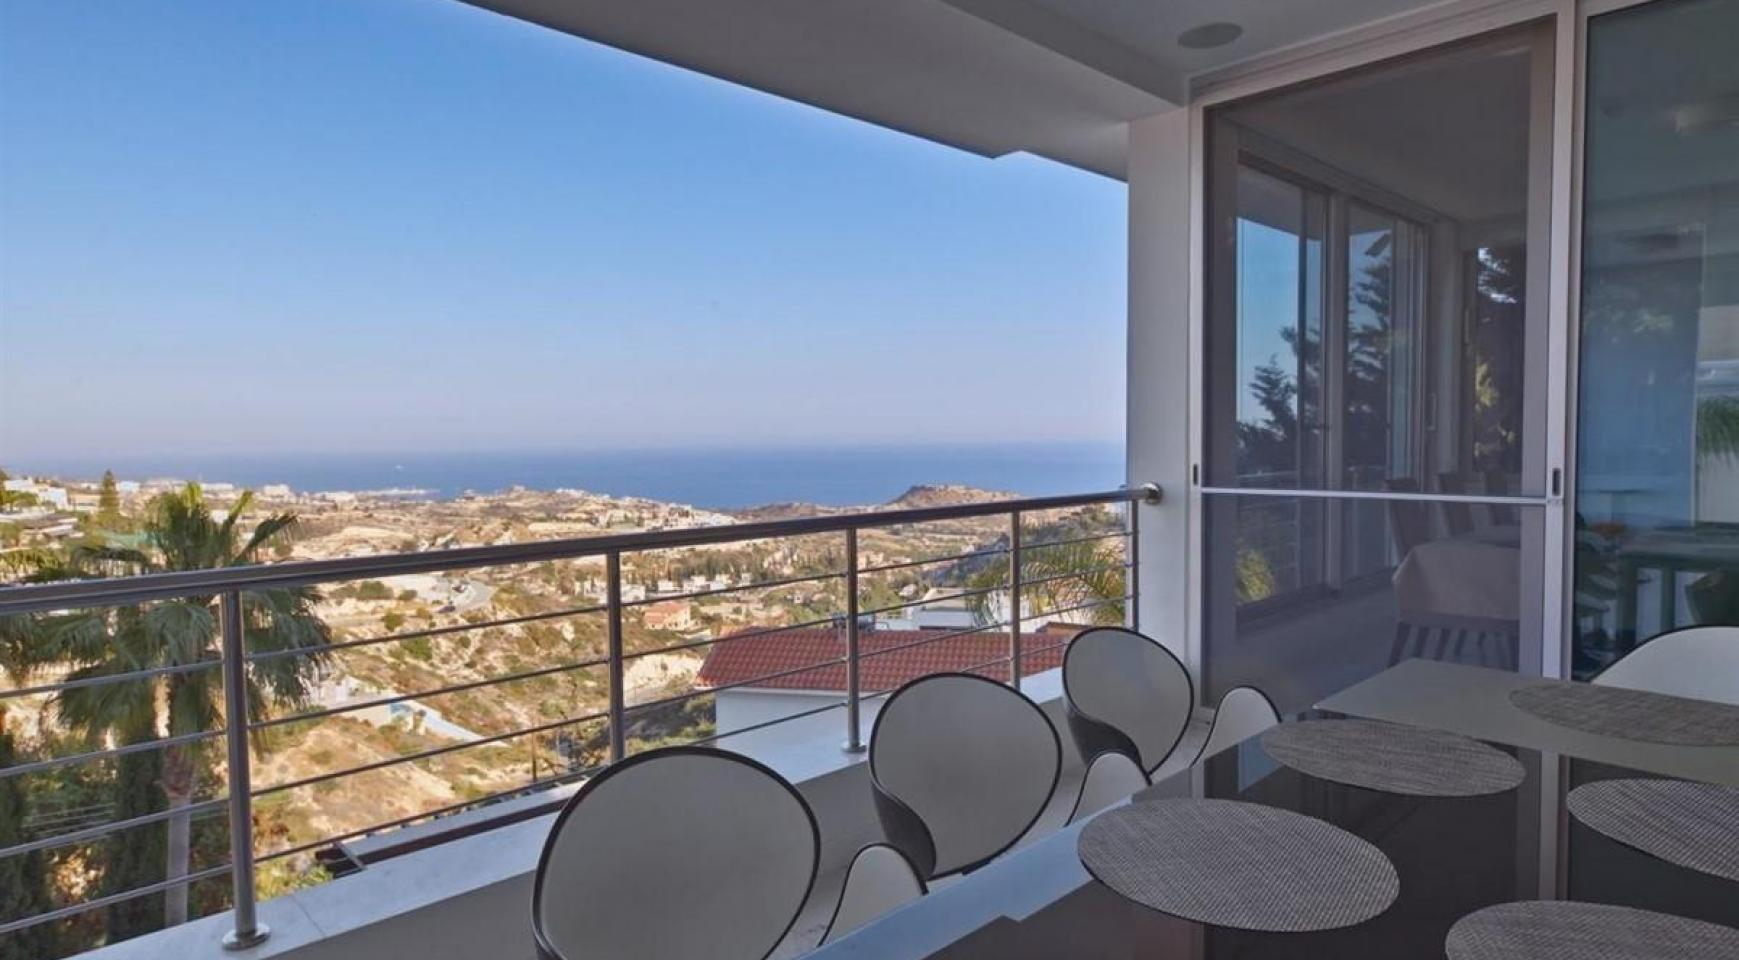 Elite 5 Bedroom Villa with Amazing Sea and Mountain Views in Agios Tychonas Area  - 4